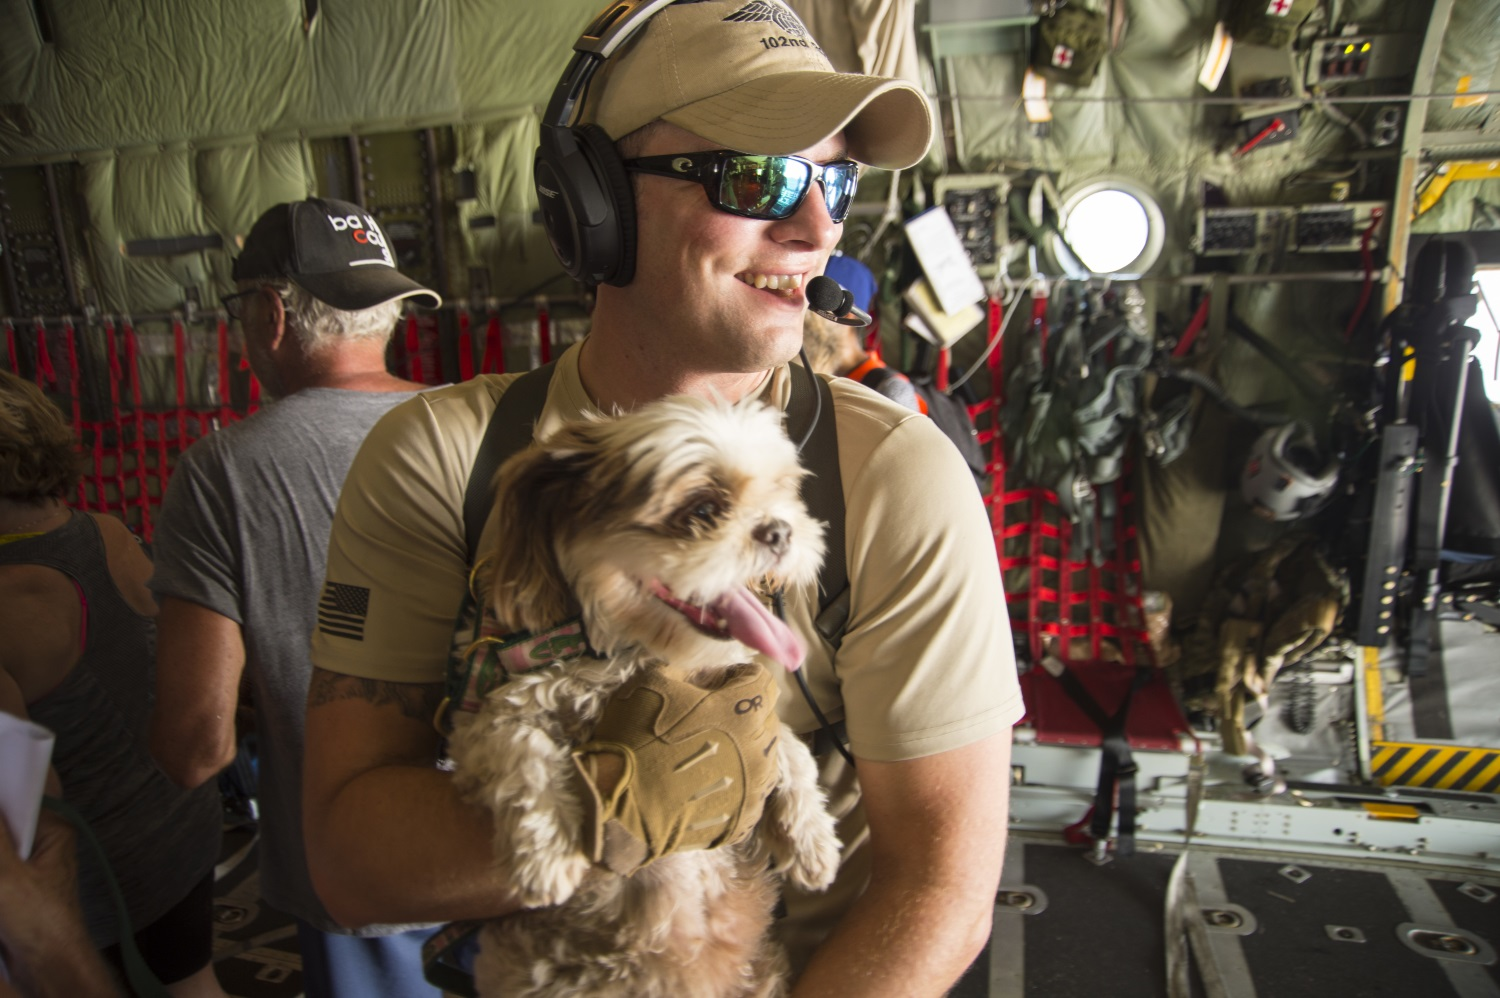 Capt. William Hall, HC-130 pilot with the 102nd Rescue Squadron, helps bring an evacuee's service dog on board an HC-130 headed to San Juan, Puerto Rico, on Sept. 10, 2017. (Staff Sgt. Erin Mills/Air Force)